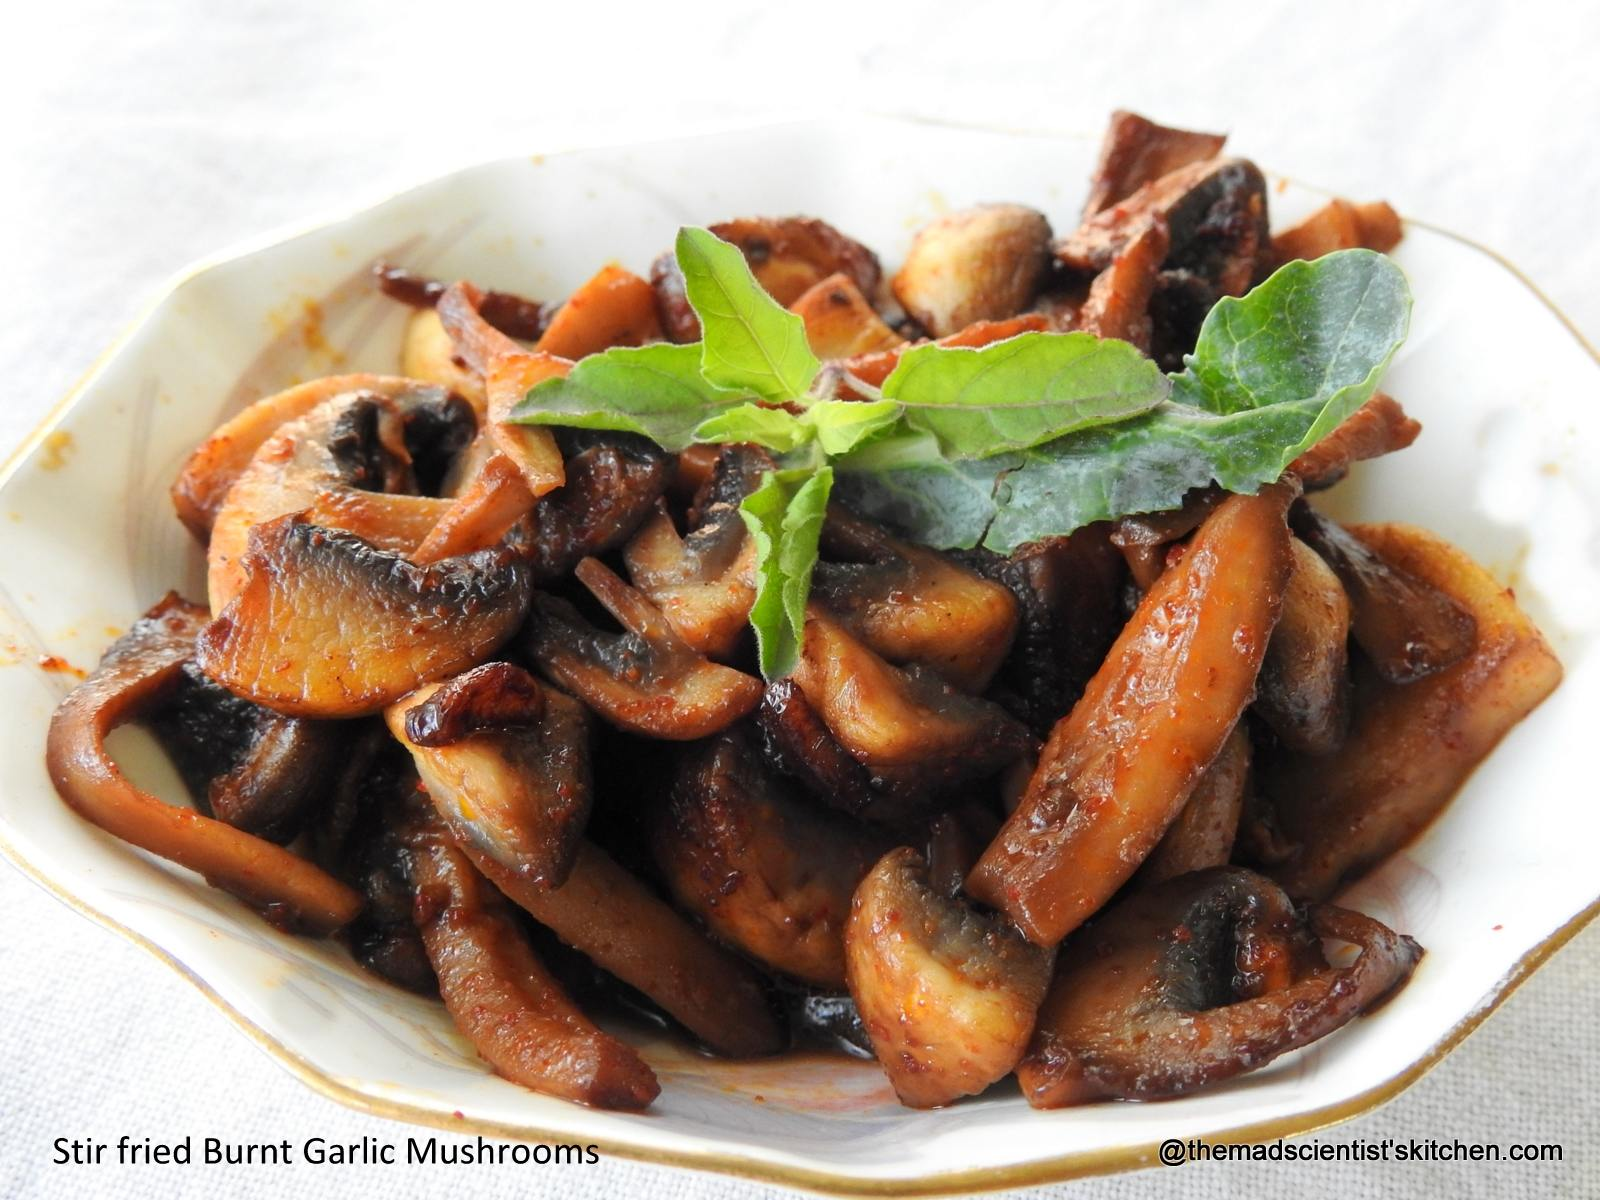 Yummy Stir fried Burnt Garlic Mushrooms